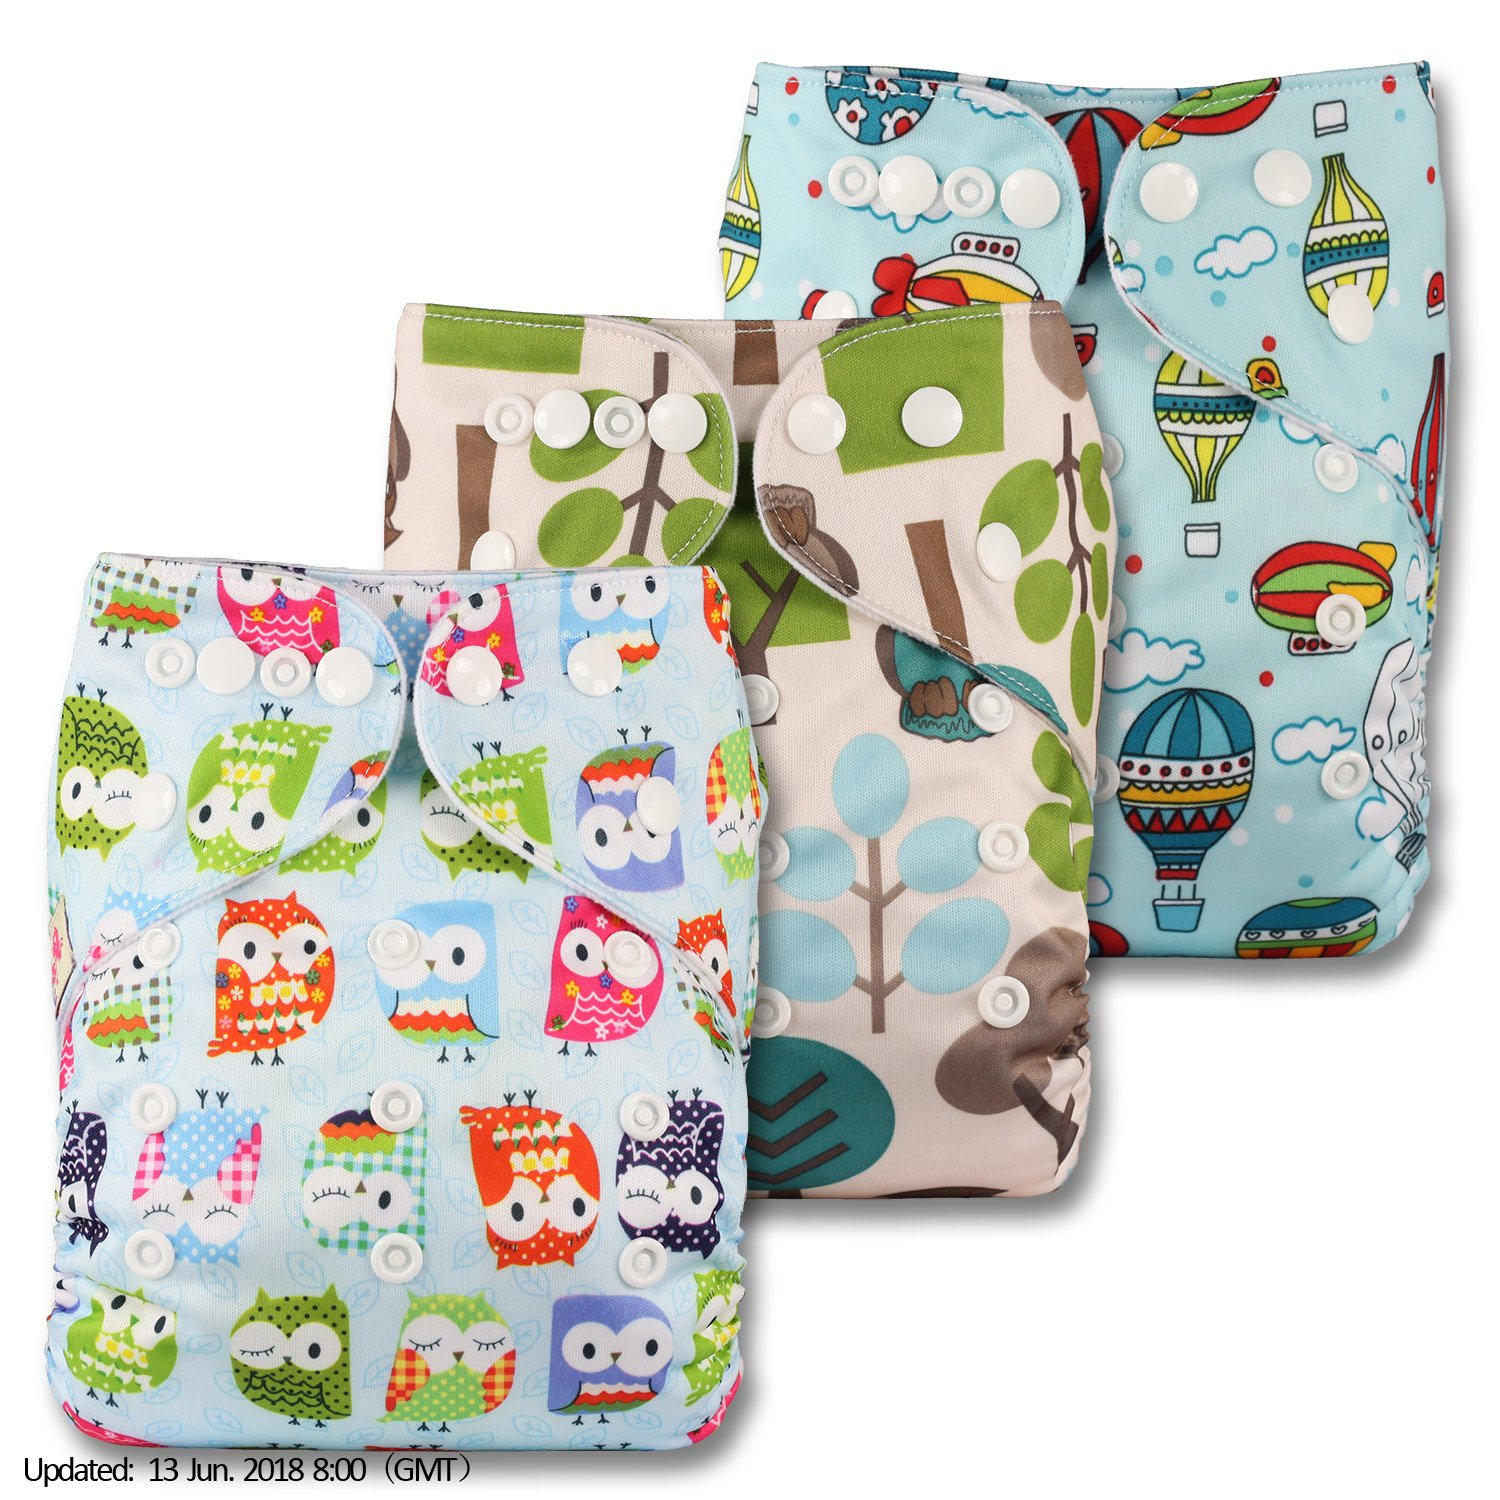 Littles /& Bloomz with 3 Microfibre Inserts Fastener: Popper Patterns 305 Reusable Pocket Cloth Nappy Set of 3